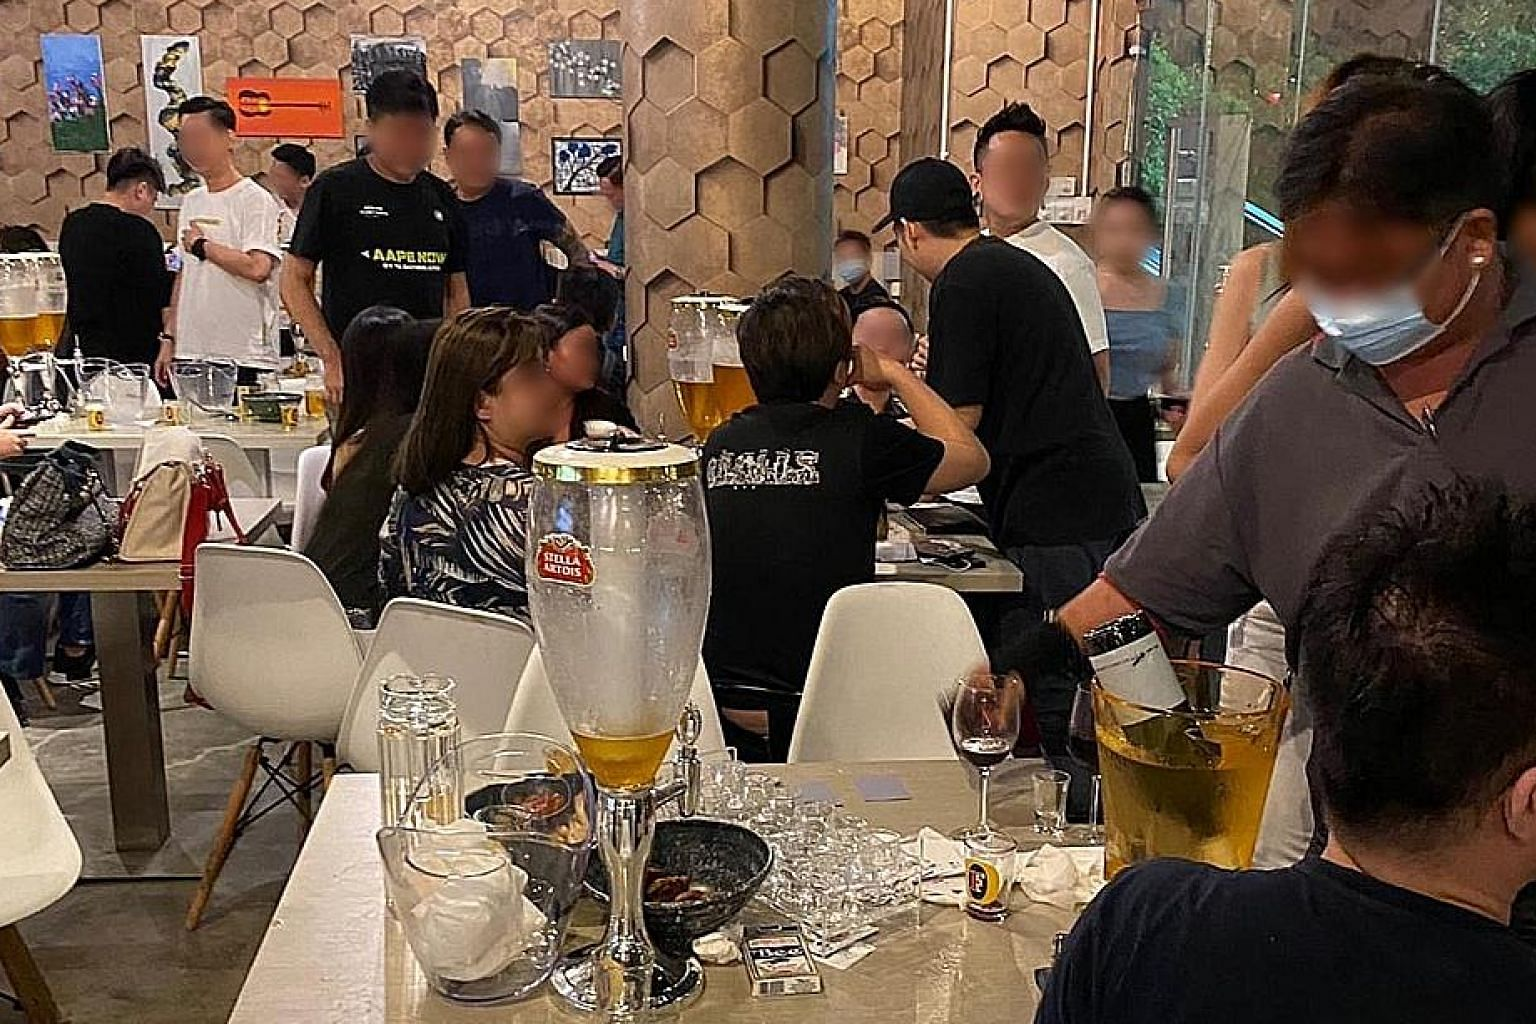 Create Kitchen and Whimsical Bar, which are adjacent to each other, were found to have violated safe management measures. S-Tripes Hotpot, found selling alcoholic beverages after 10.30pm, served the drinks in teapots (left) and green tea bottles to a